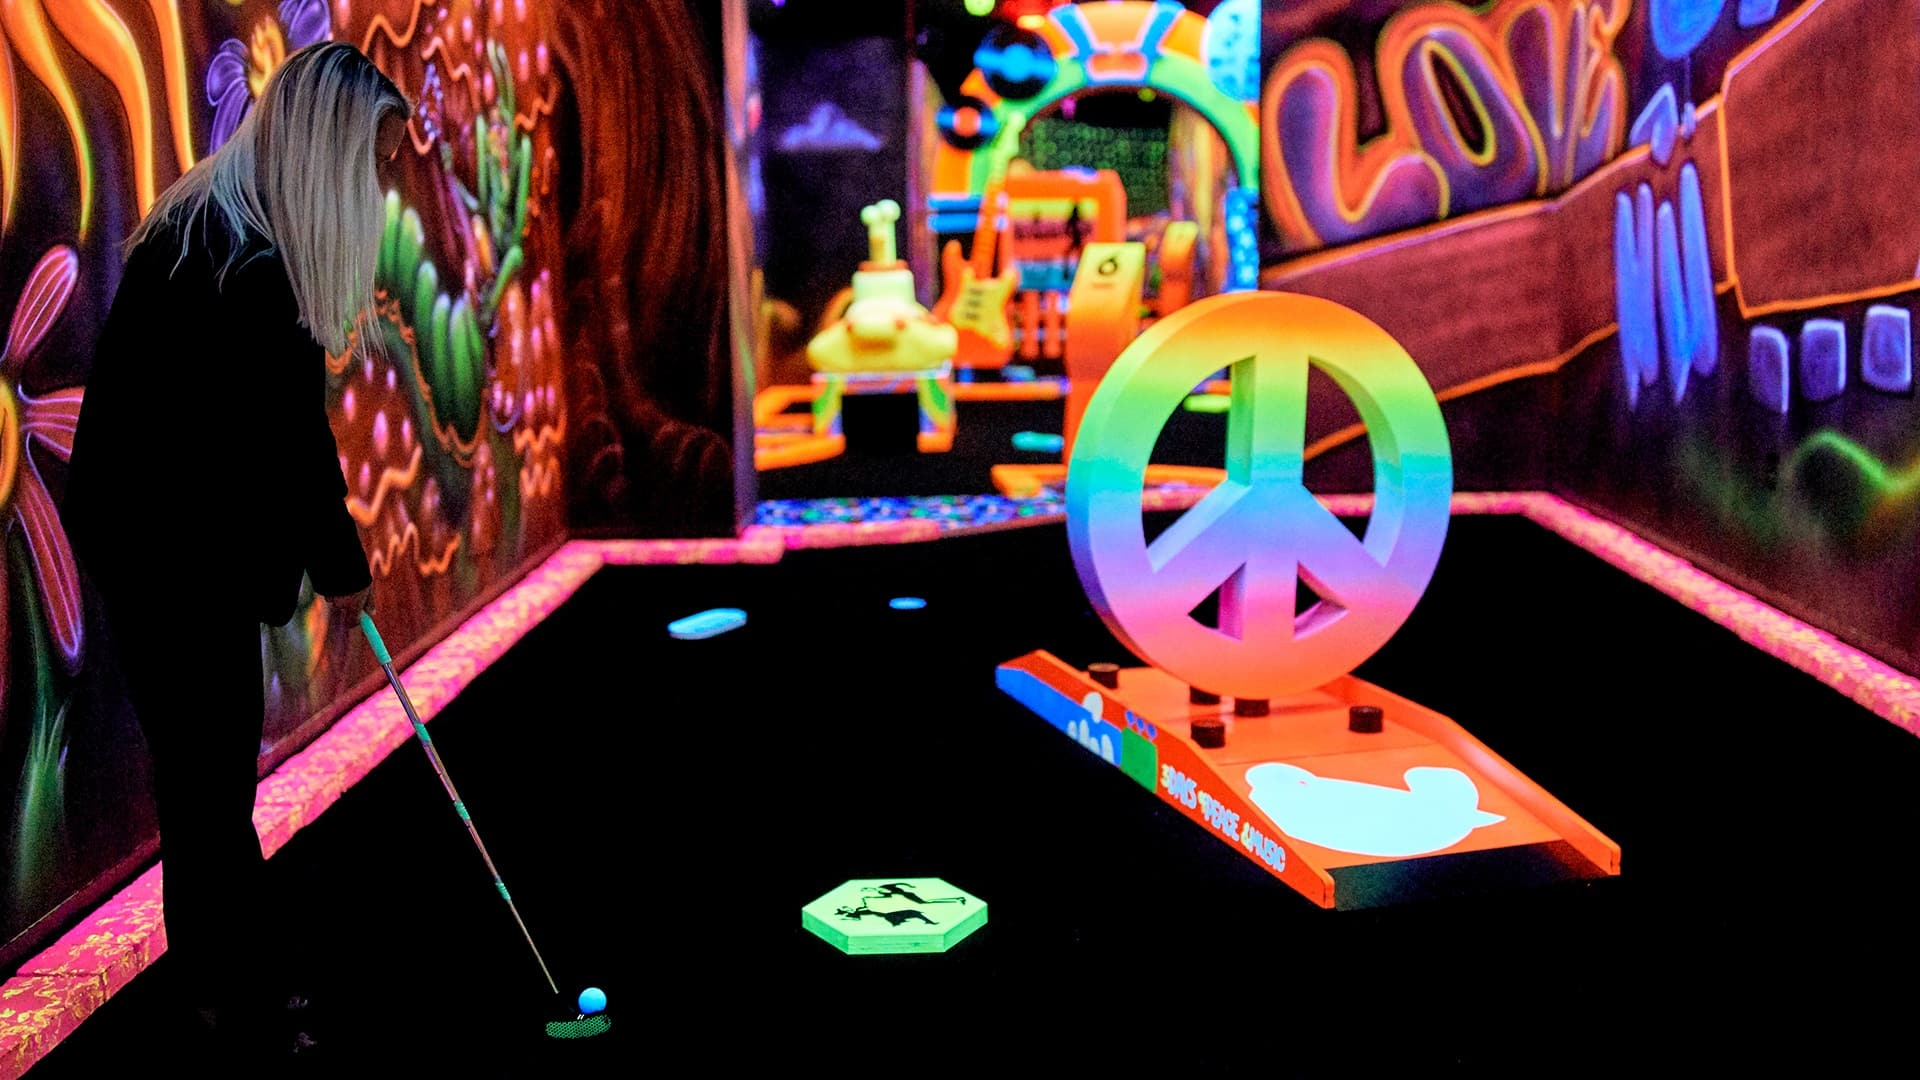 Rock of Ages Blacklight Minigolf at Mall of America